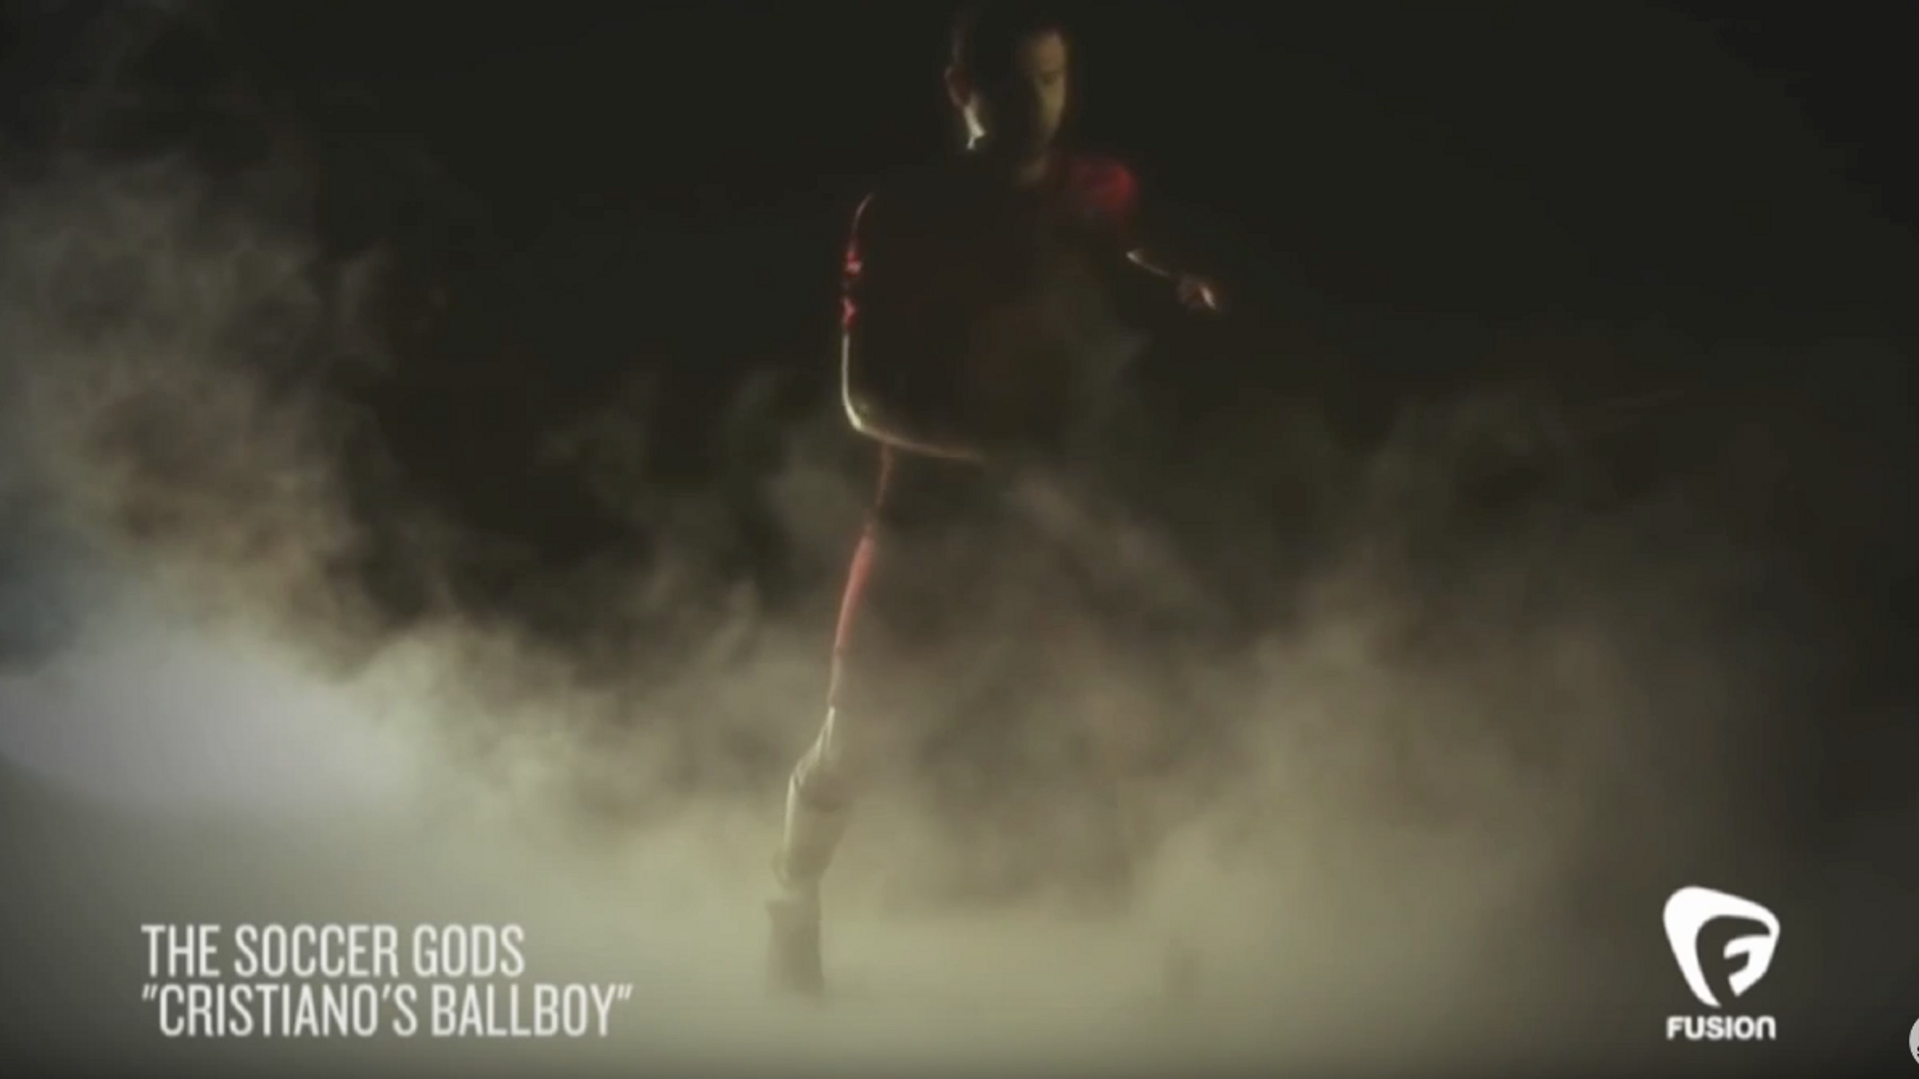 Oh Cristiano! Music Video by The Soccer Gods